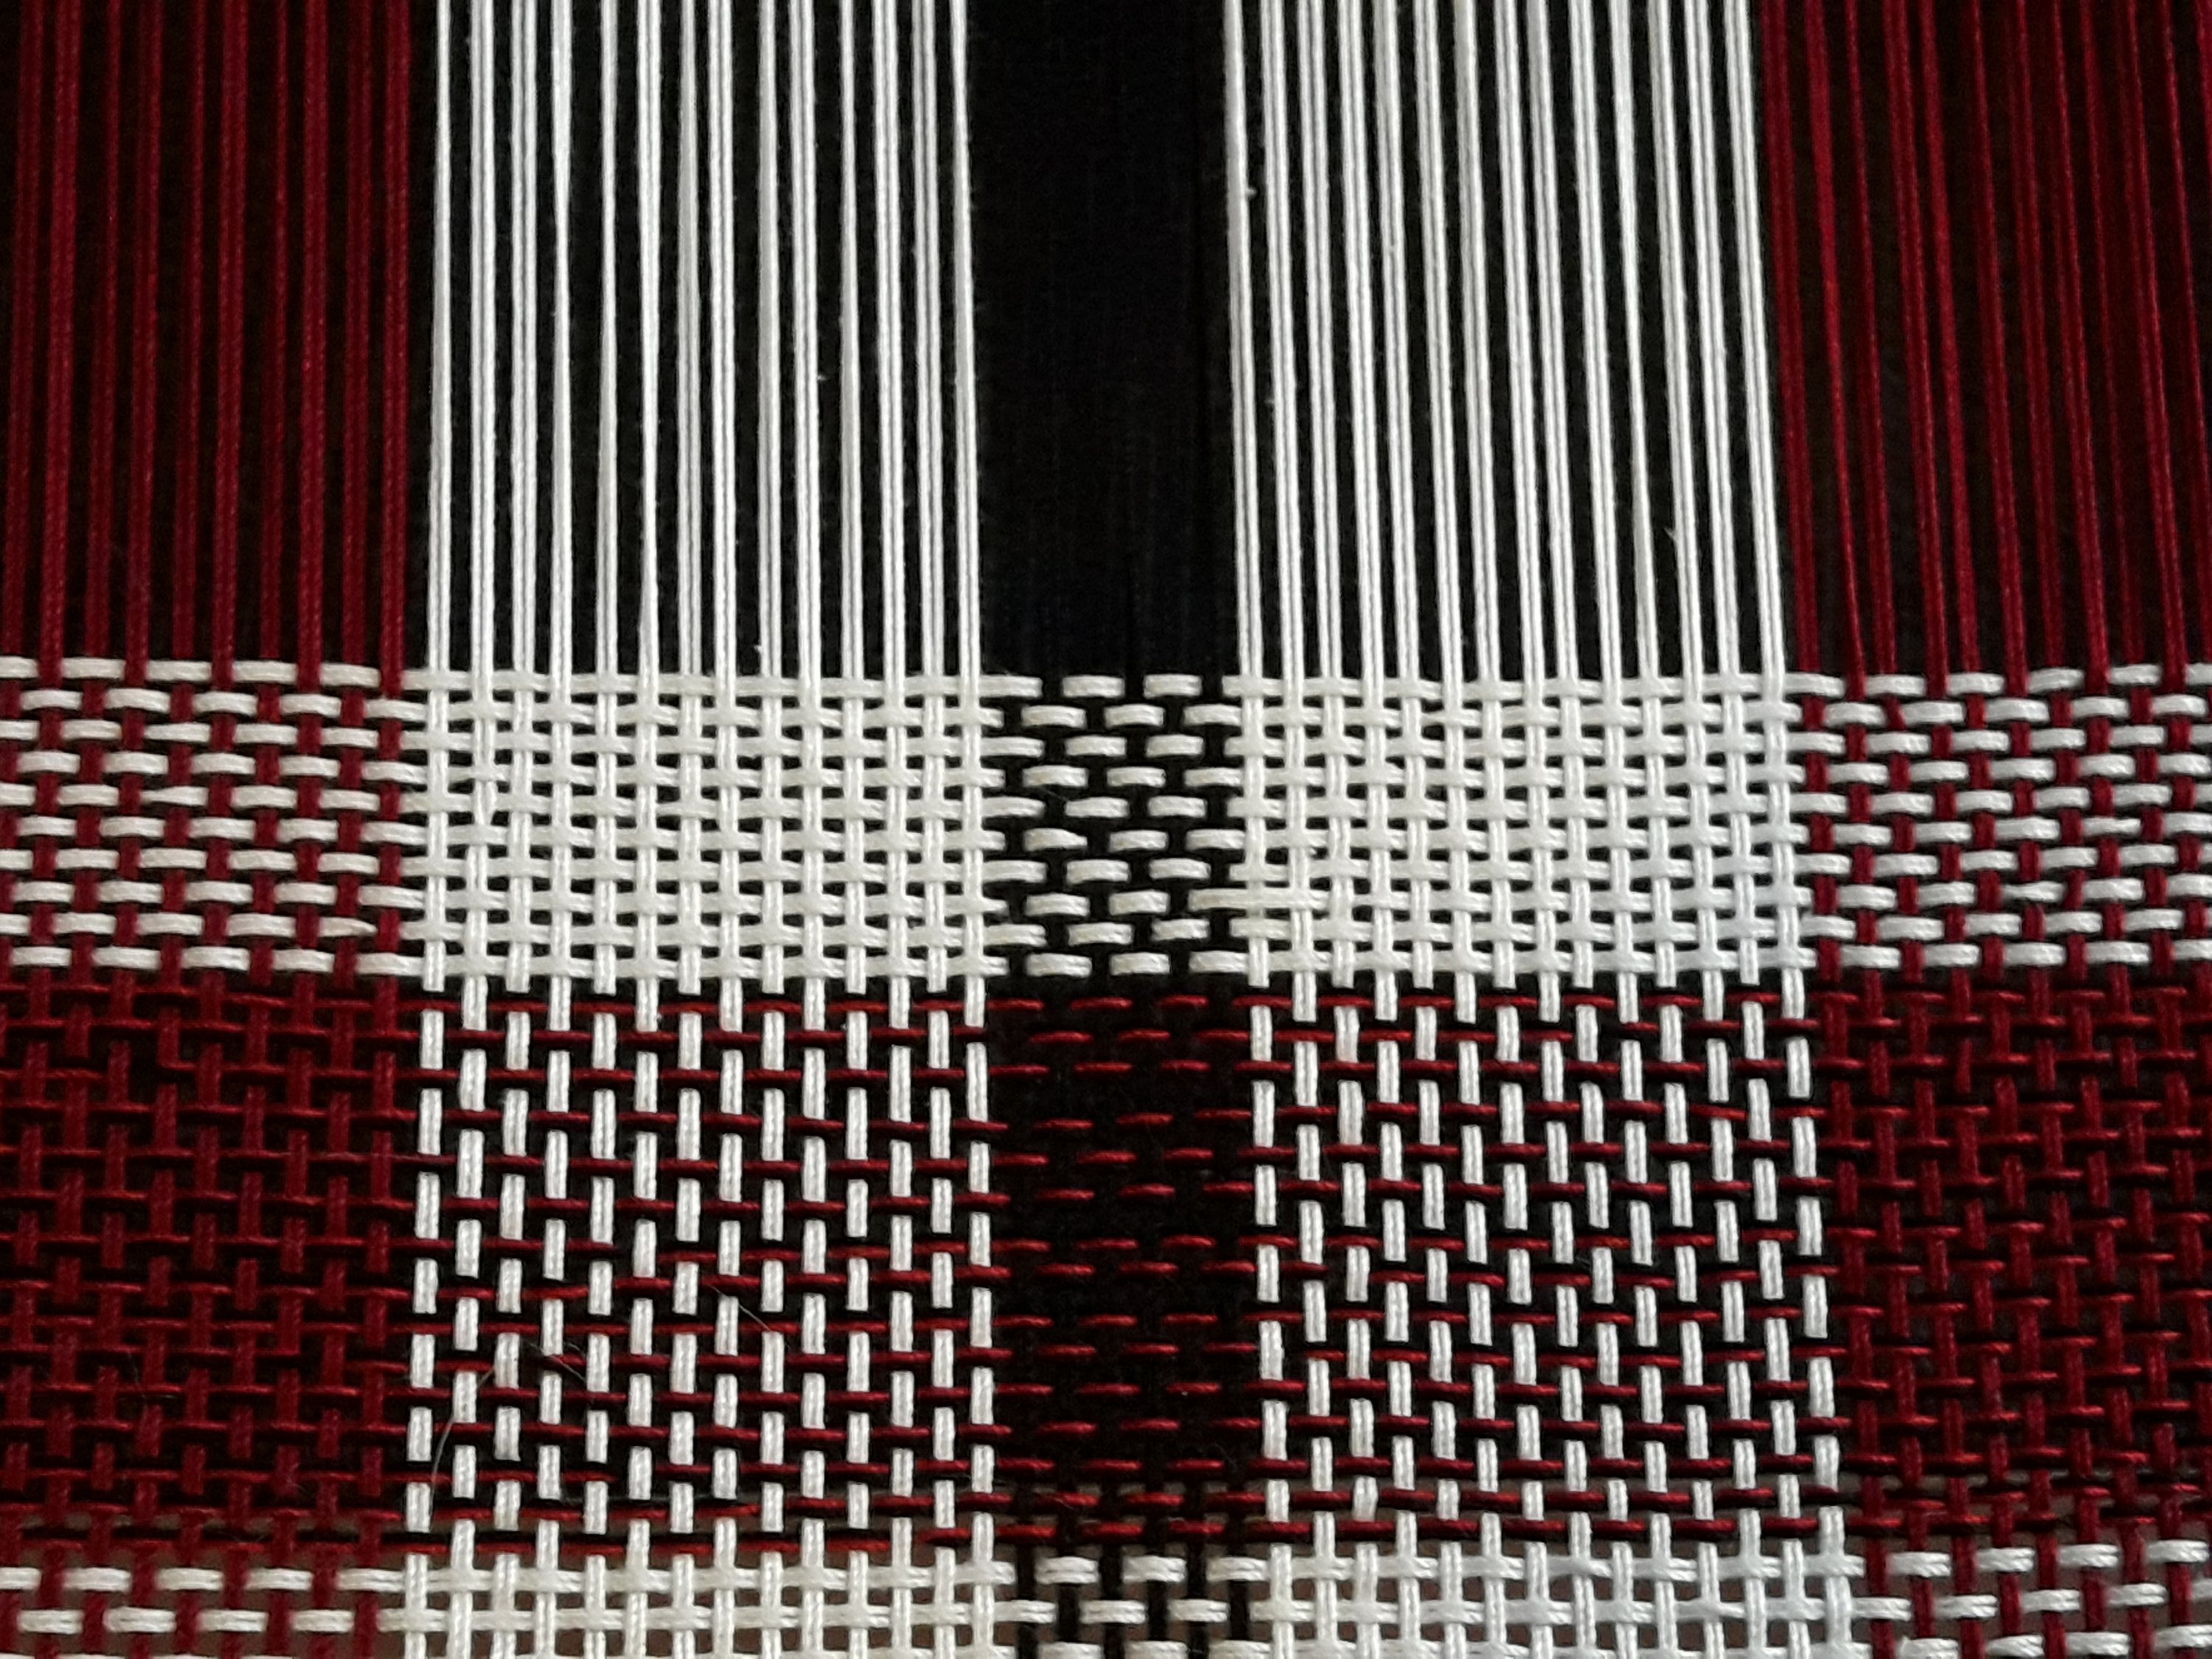 Weaving a plaid